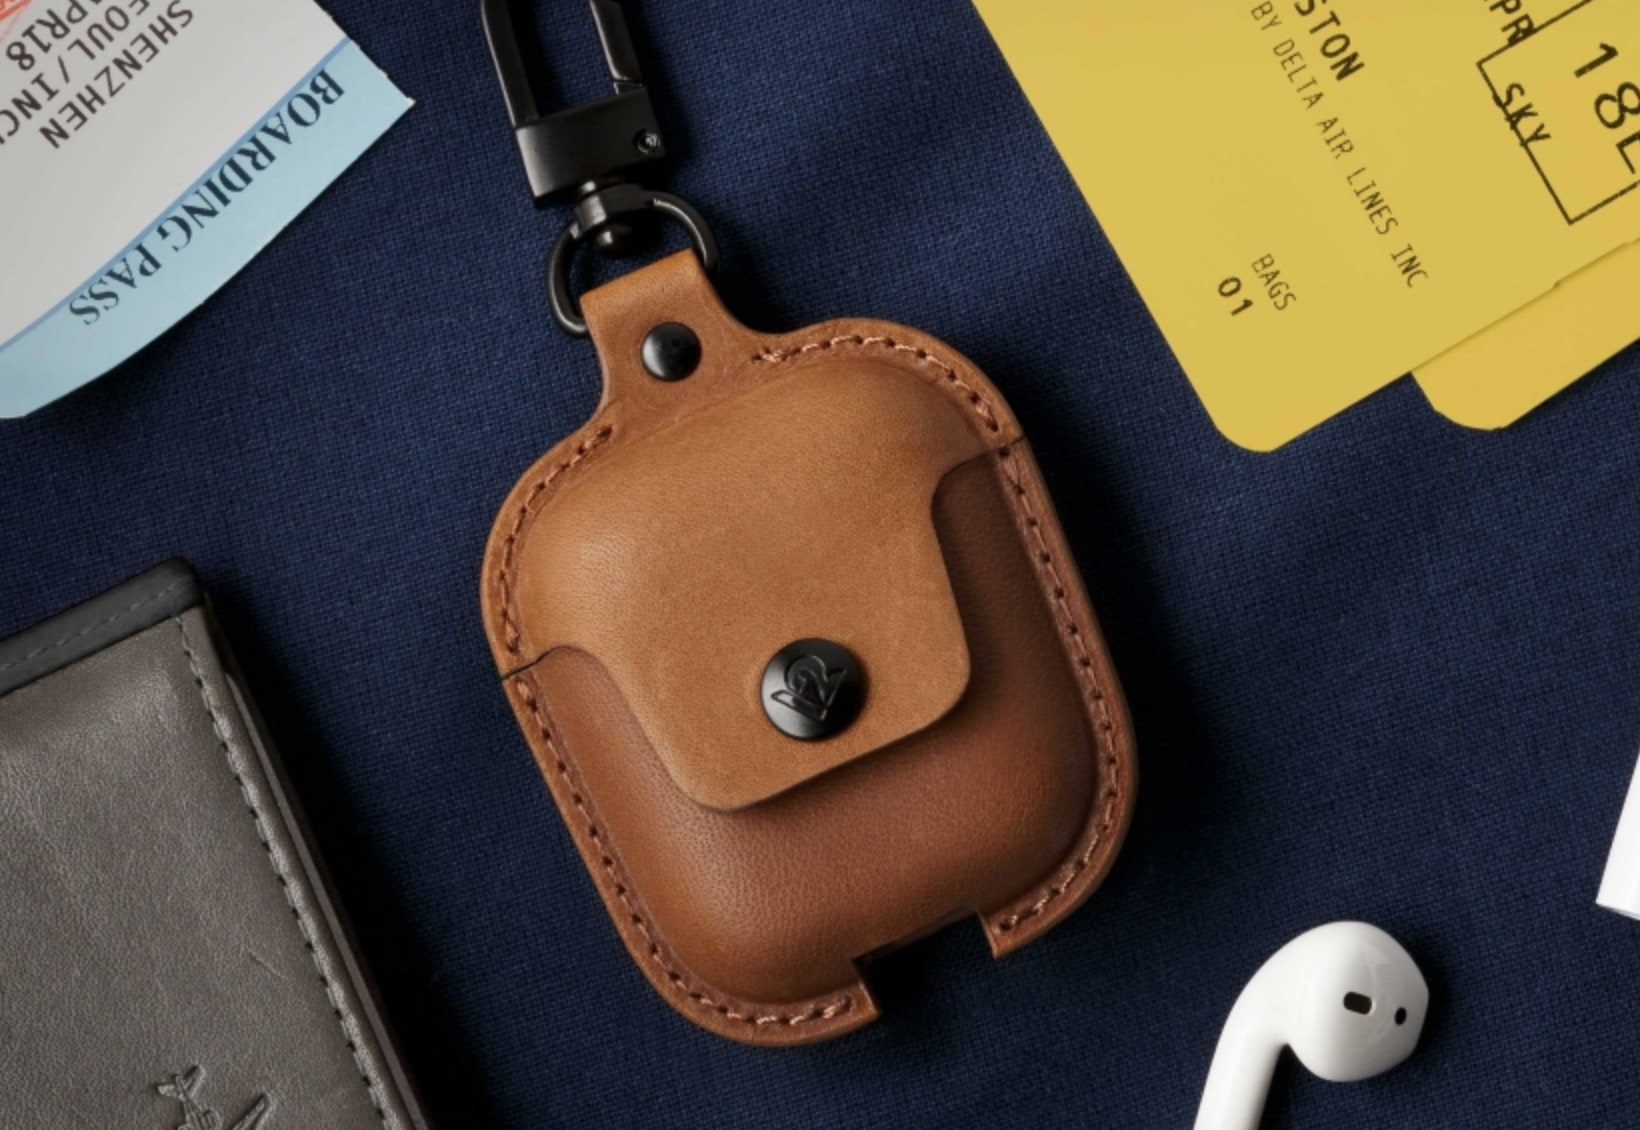 A gorgeous leather case armors your new AirPods 2 against theft, damage, and debris.